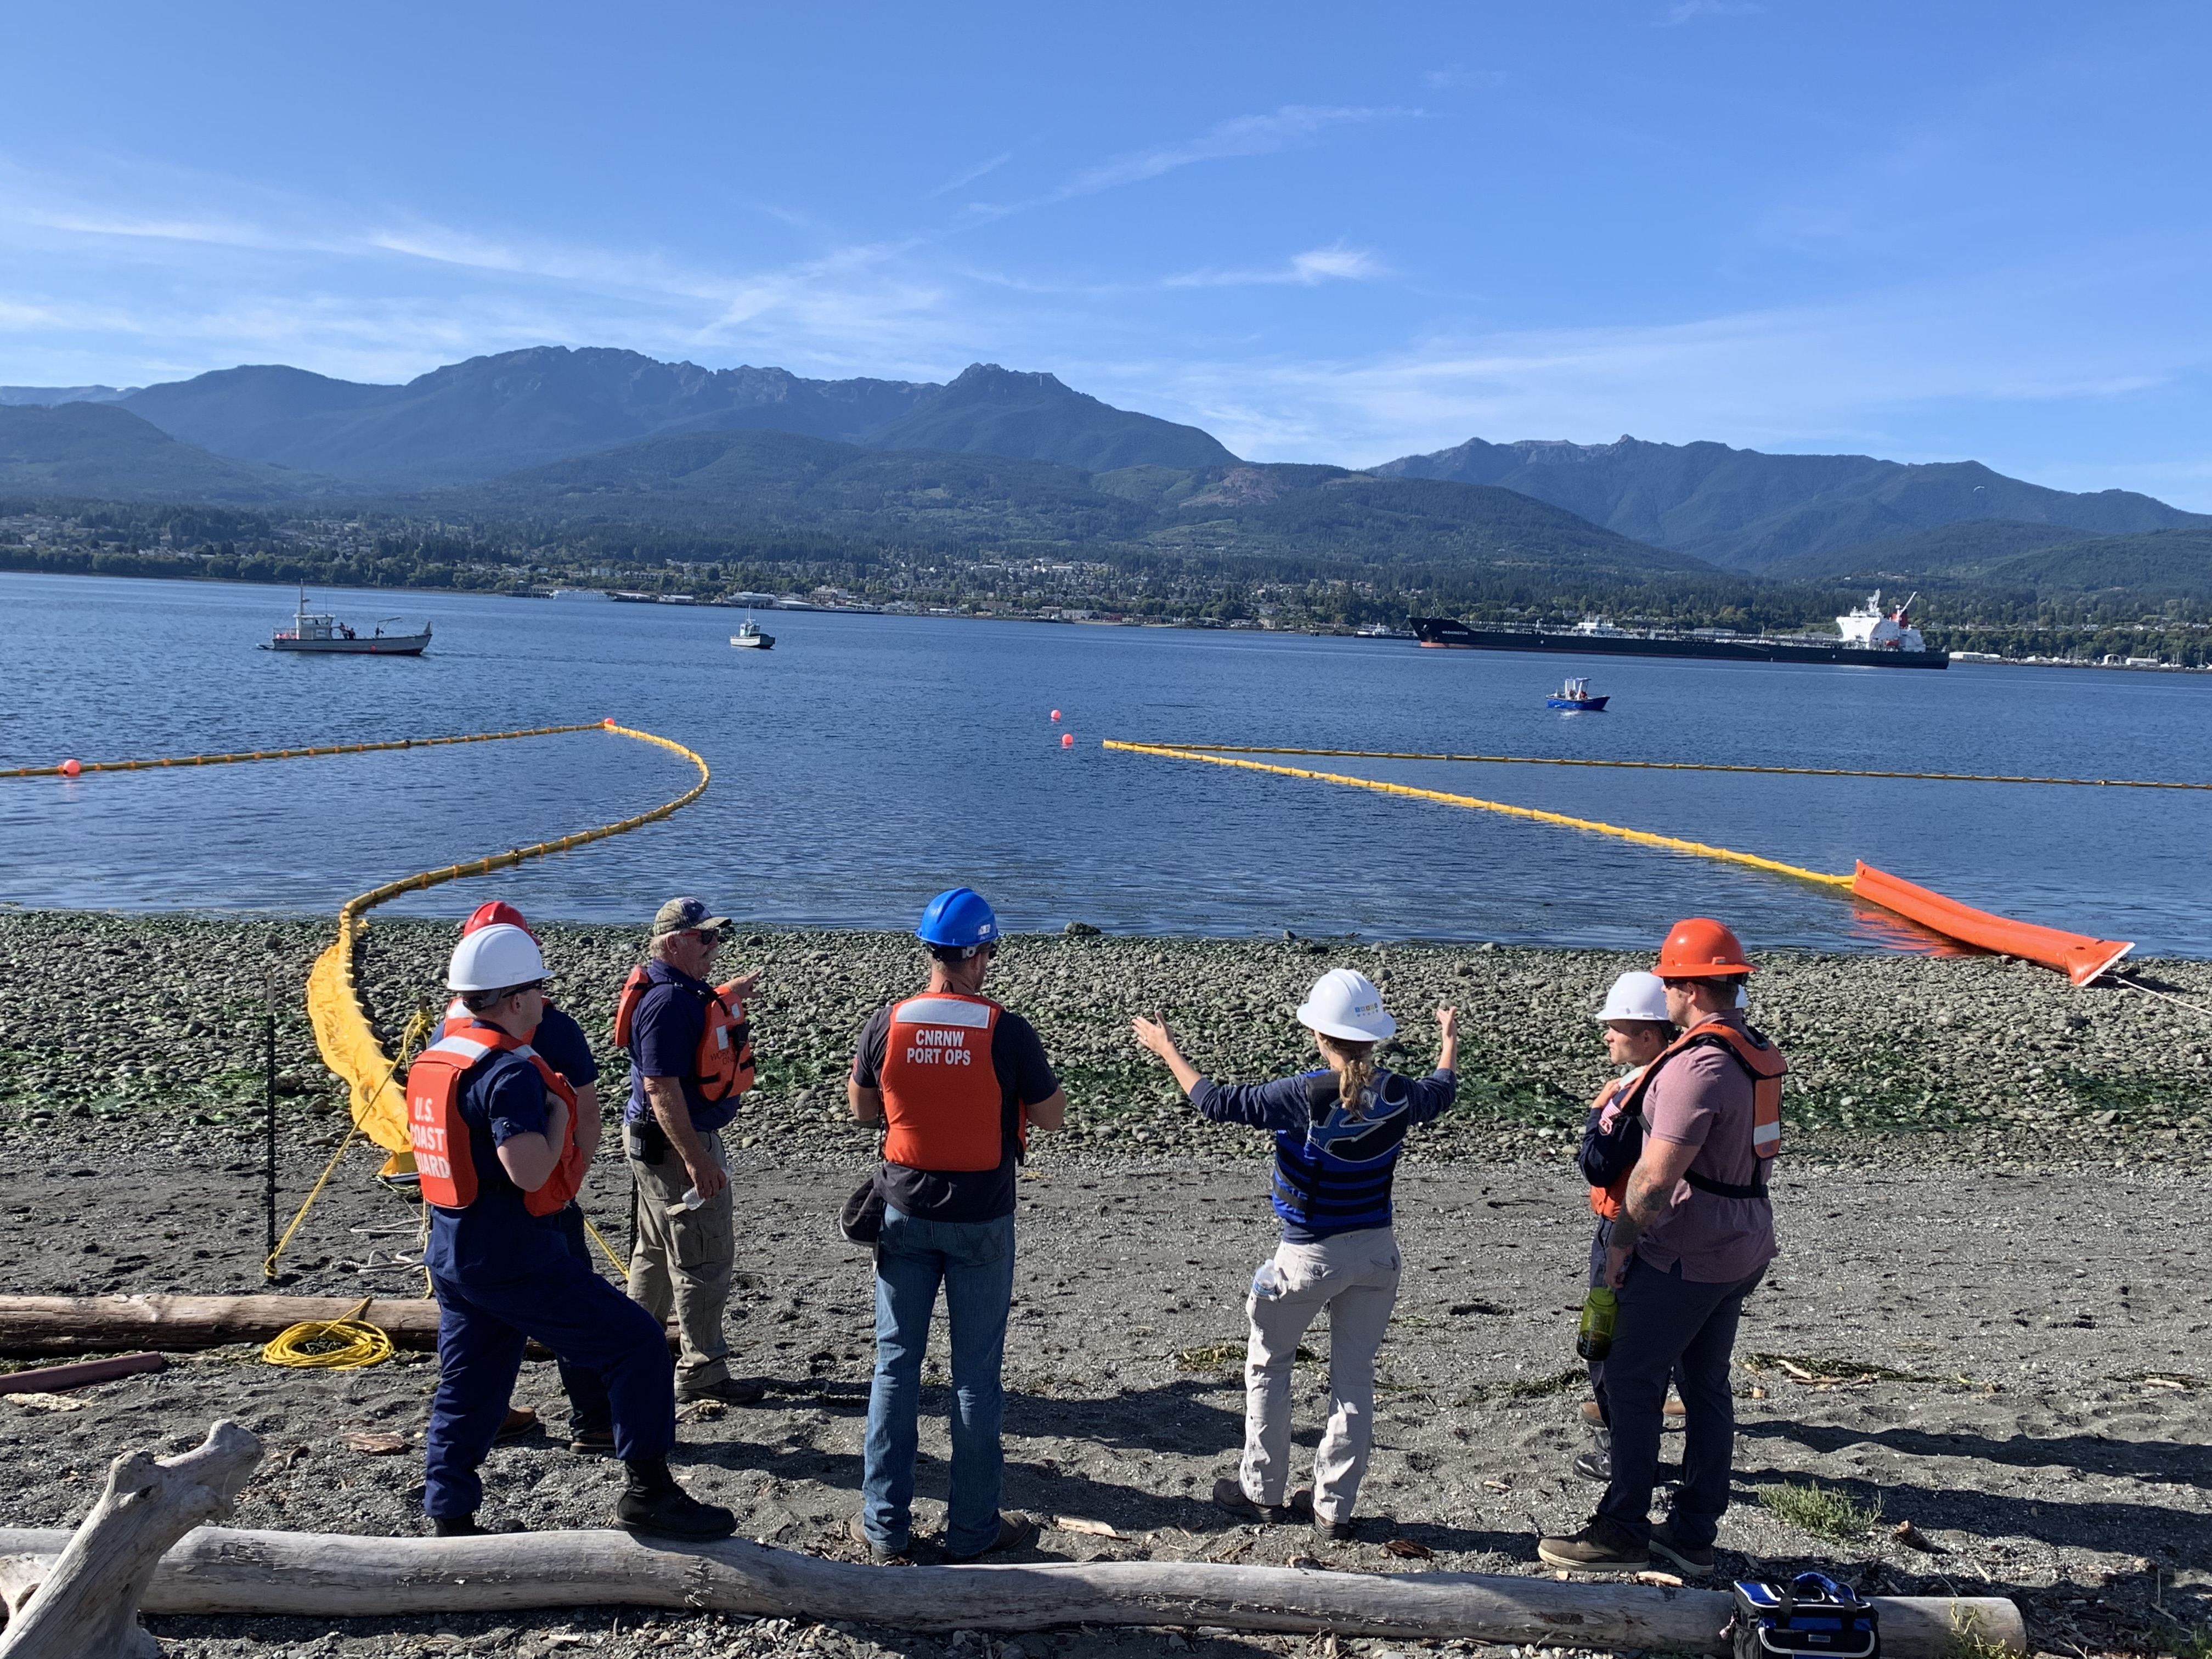 A group of people in response gear standing on a shoreline with pollution boom extending out across the water.